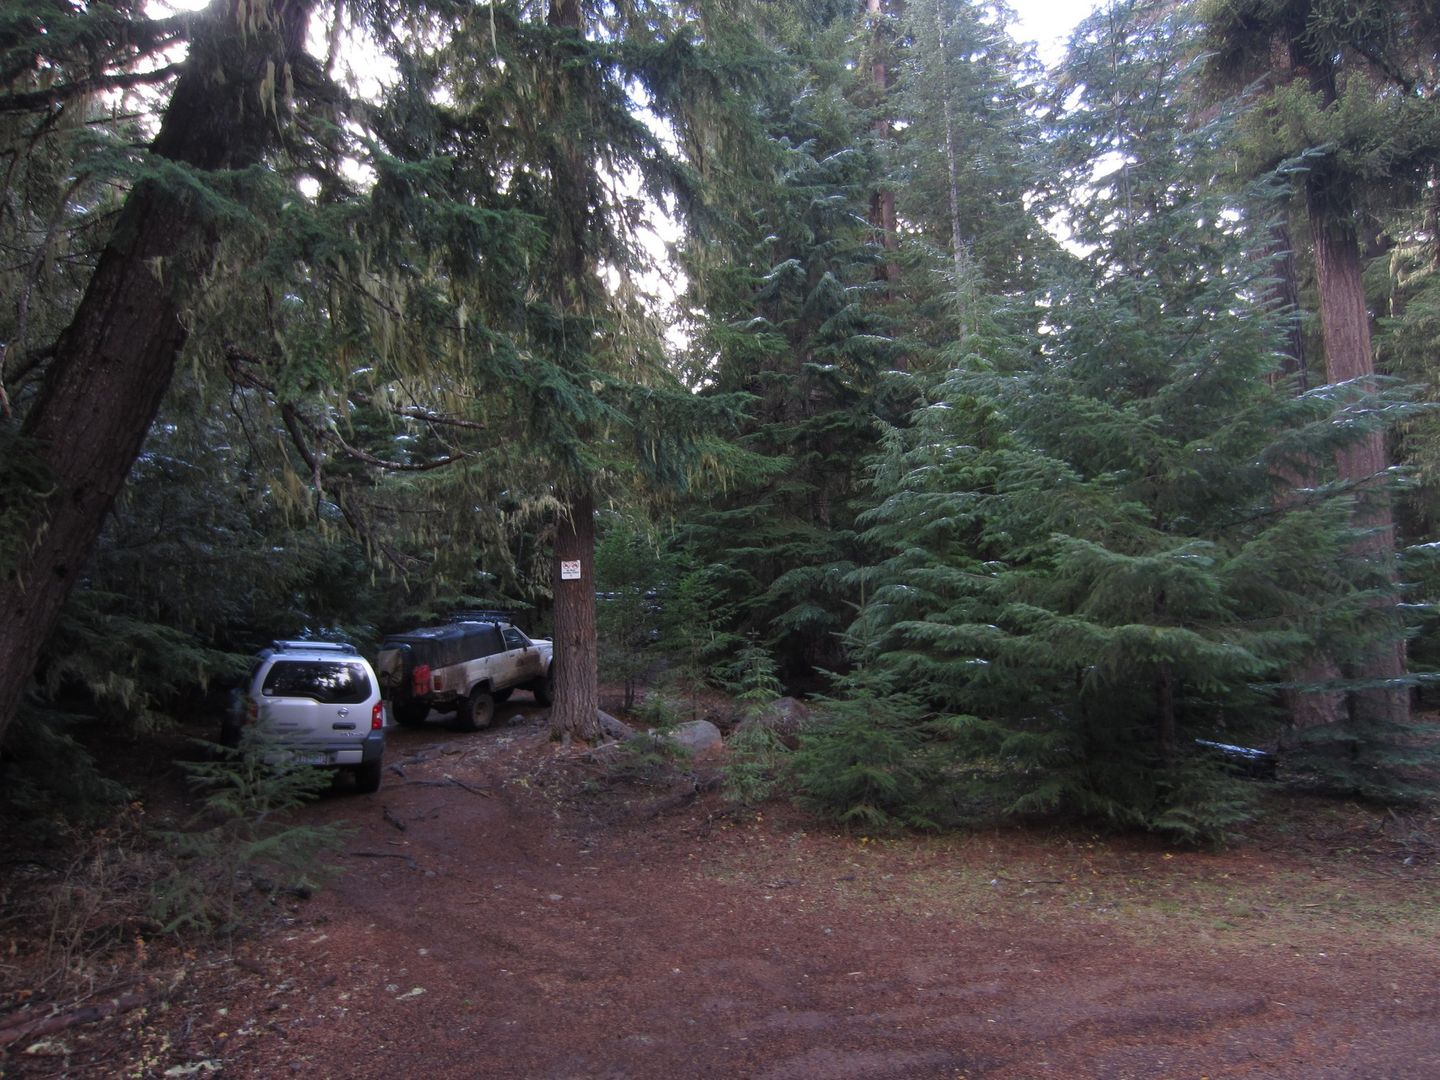 Barlow Trail - Waypoint 19: Go Straight - Intersection with Keeps Mill Road